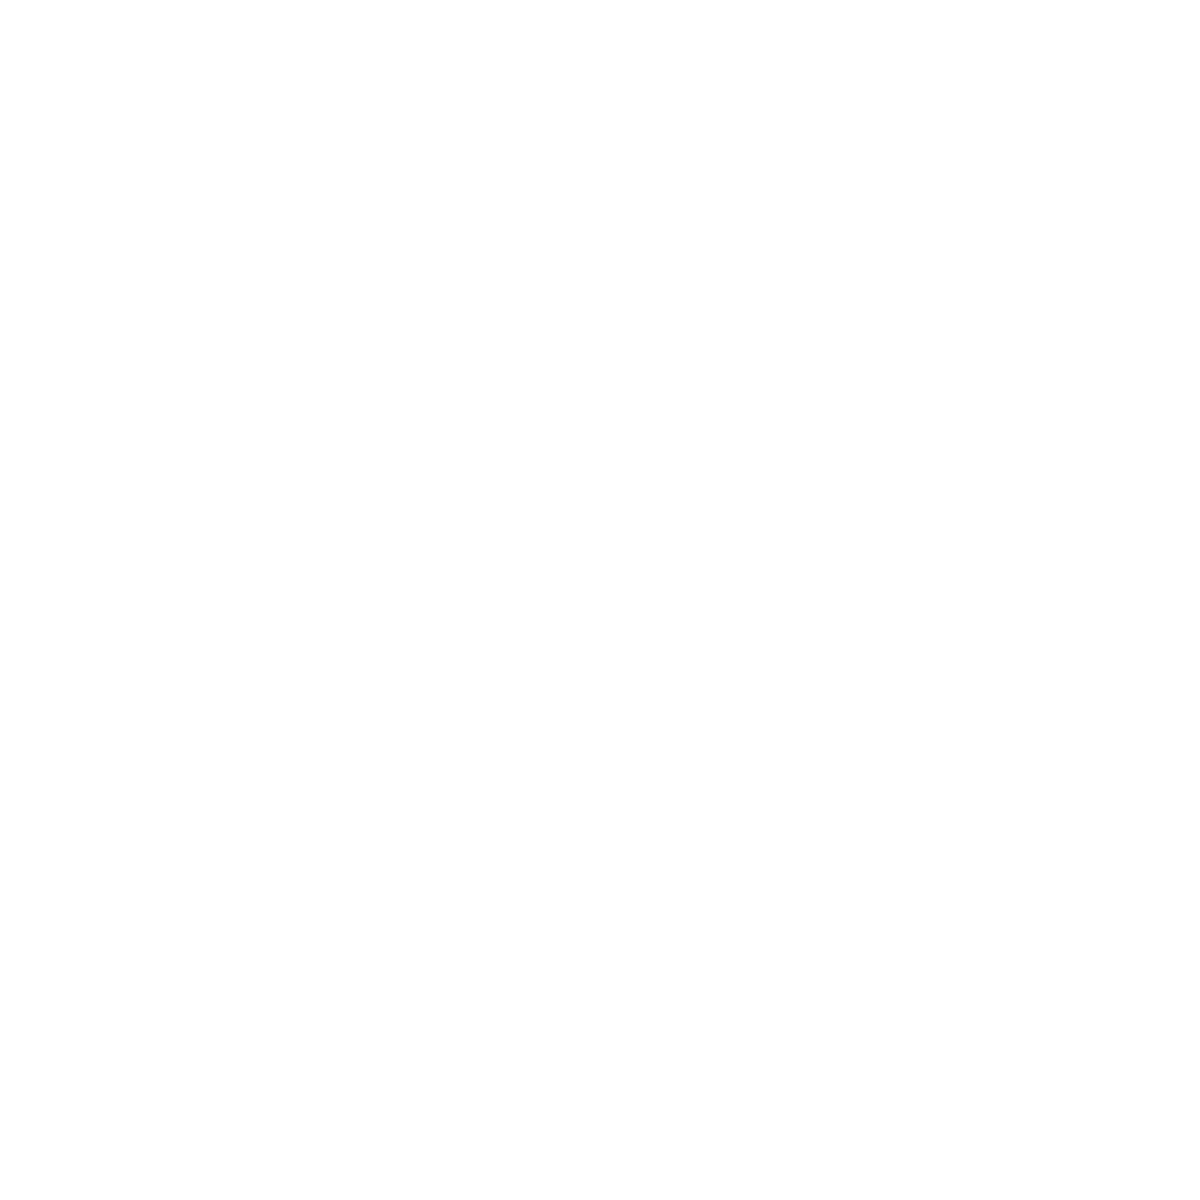 Photographs allowed